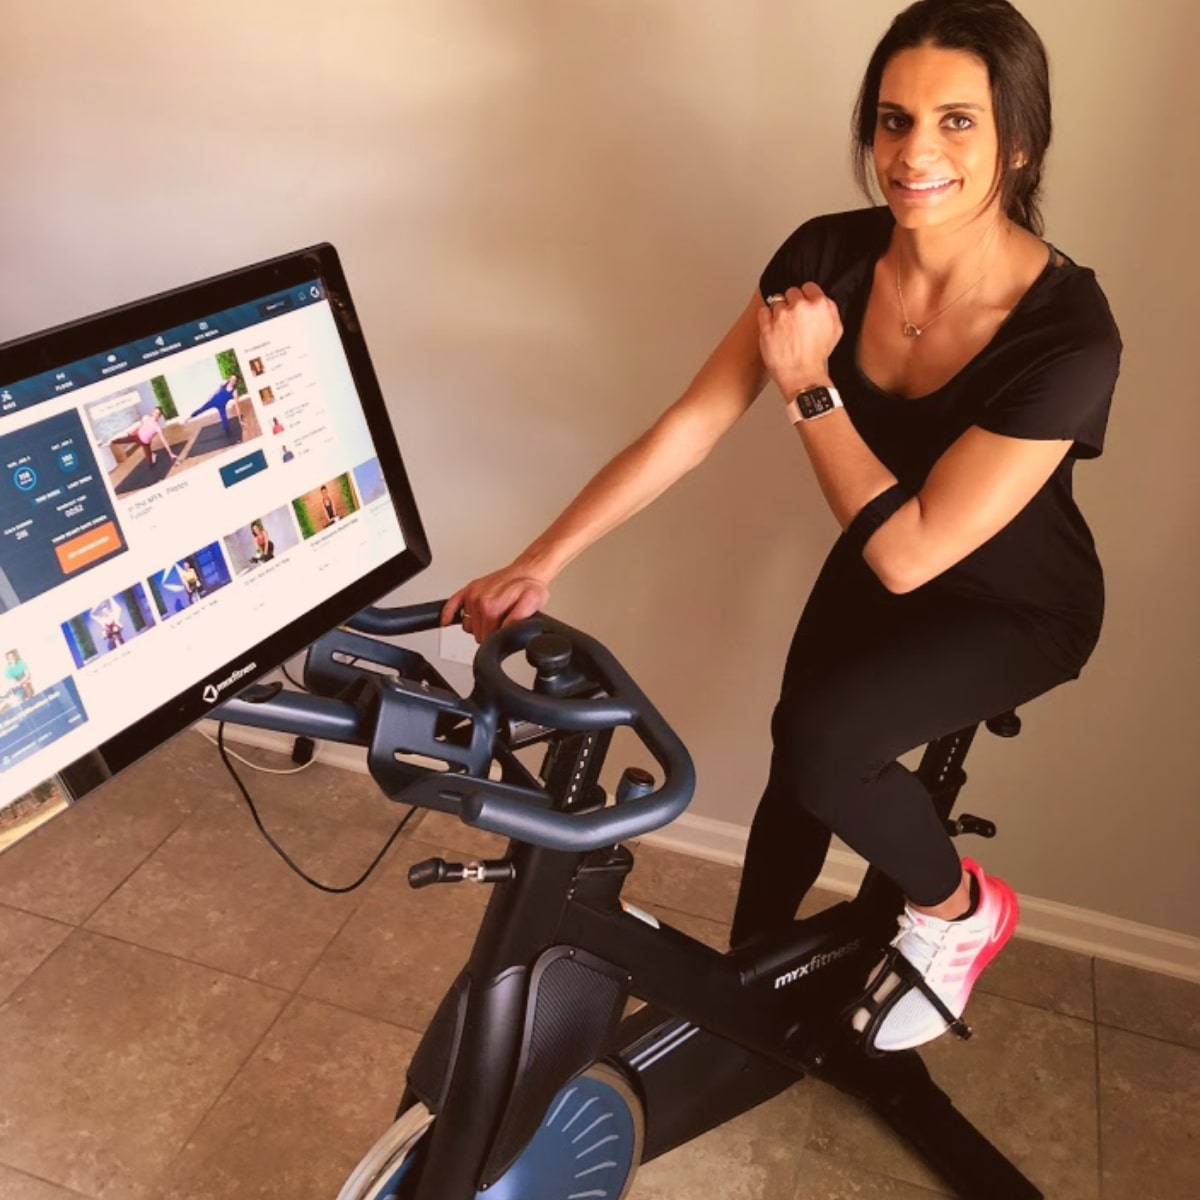 Tami Smith rides and reviews the MYXfitness bike